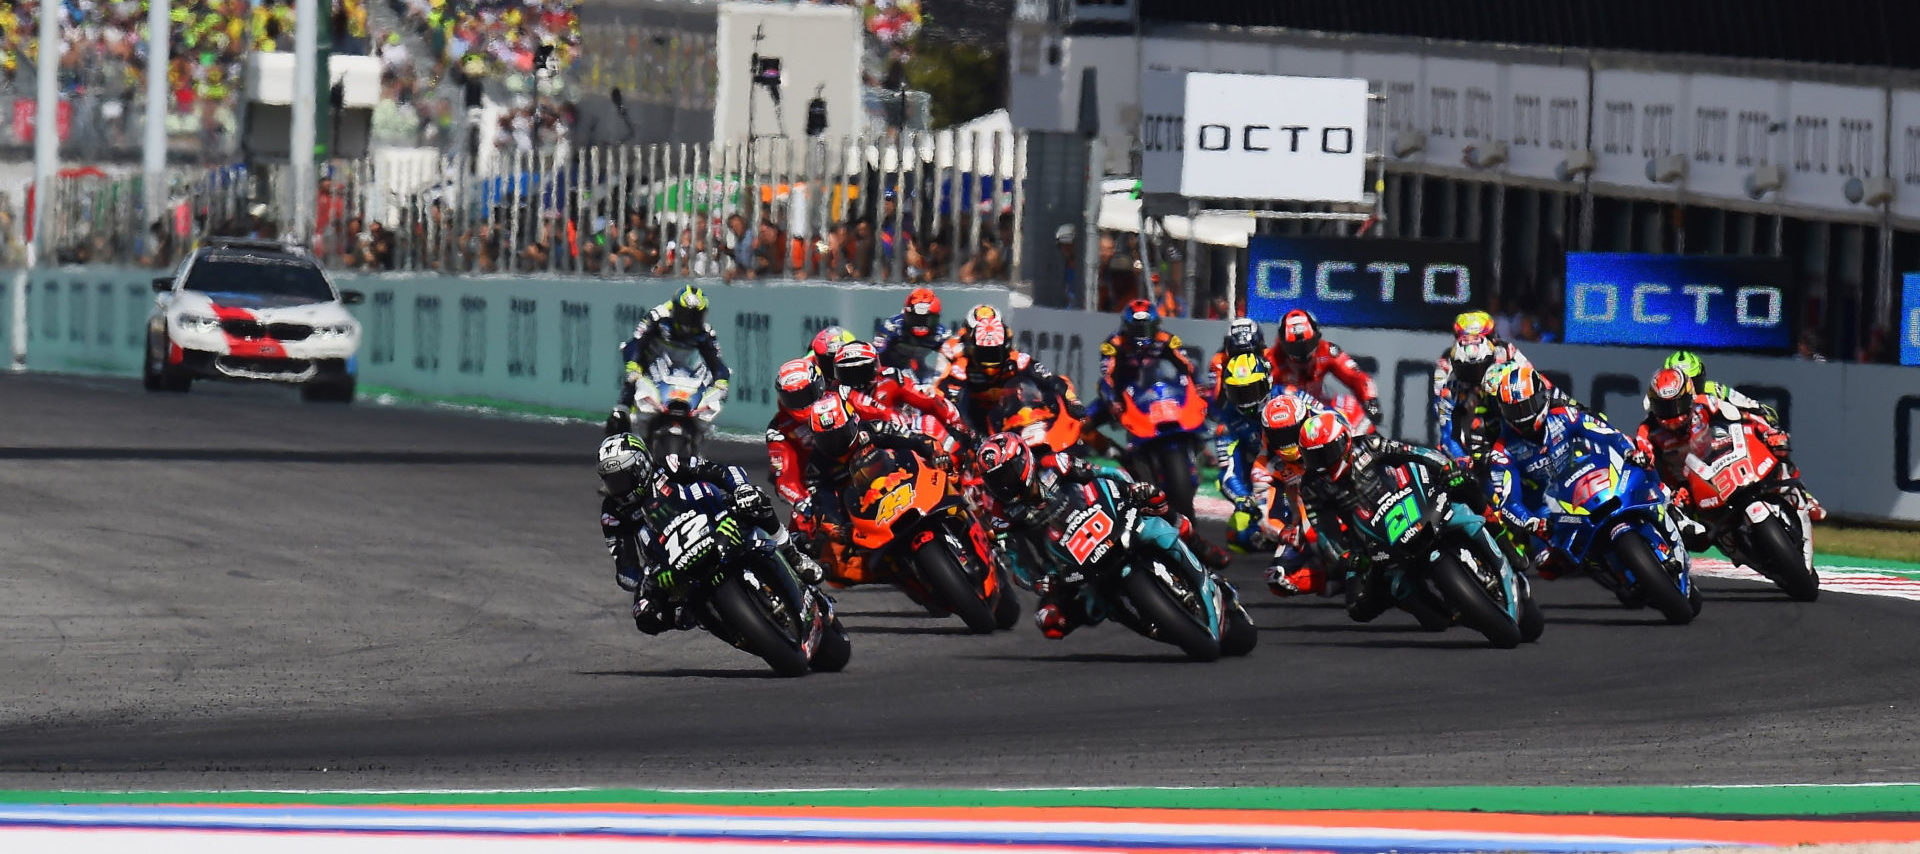 The start of the MotoGP race at Misano in 2019. Photo courtesy Michelin.